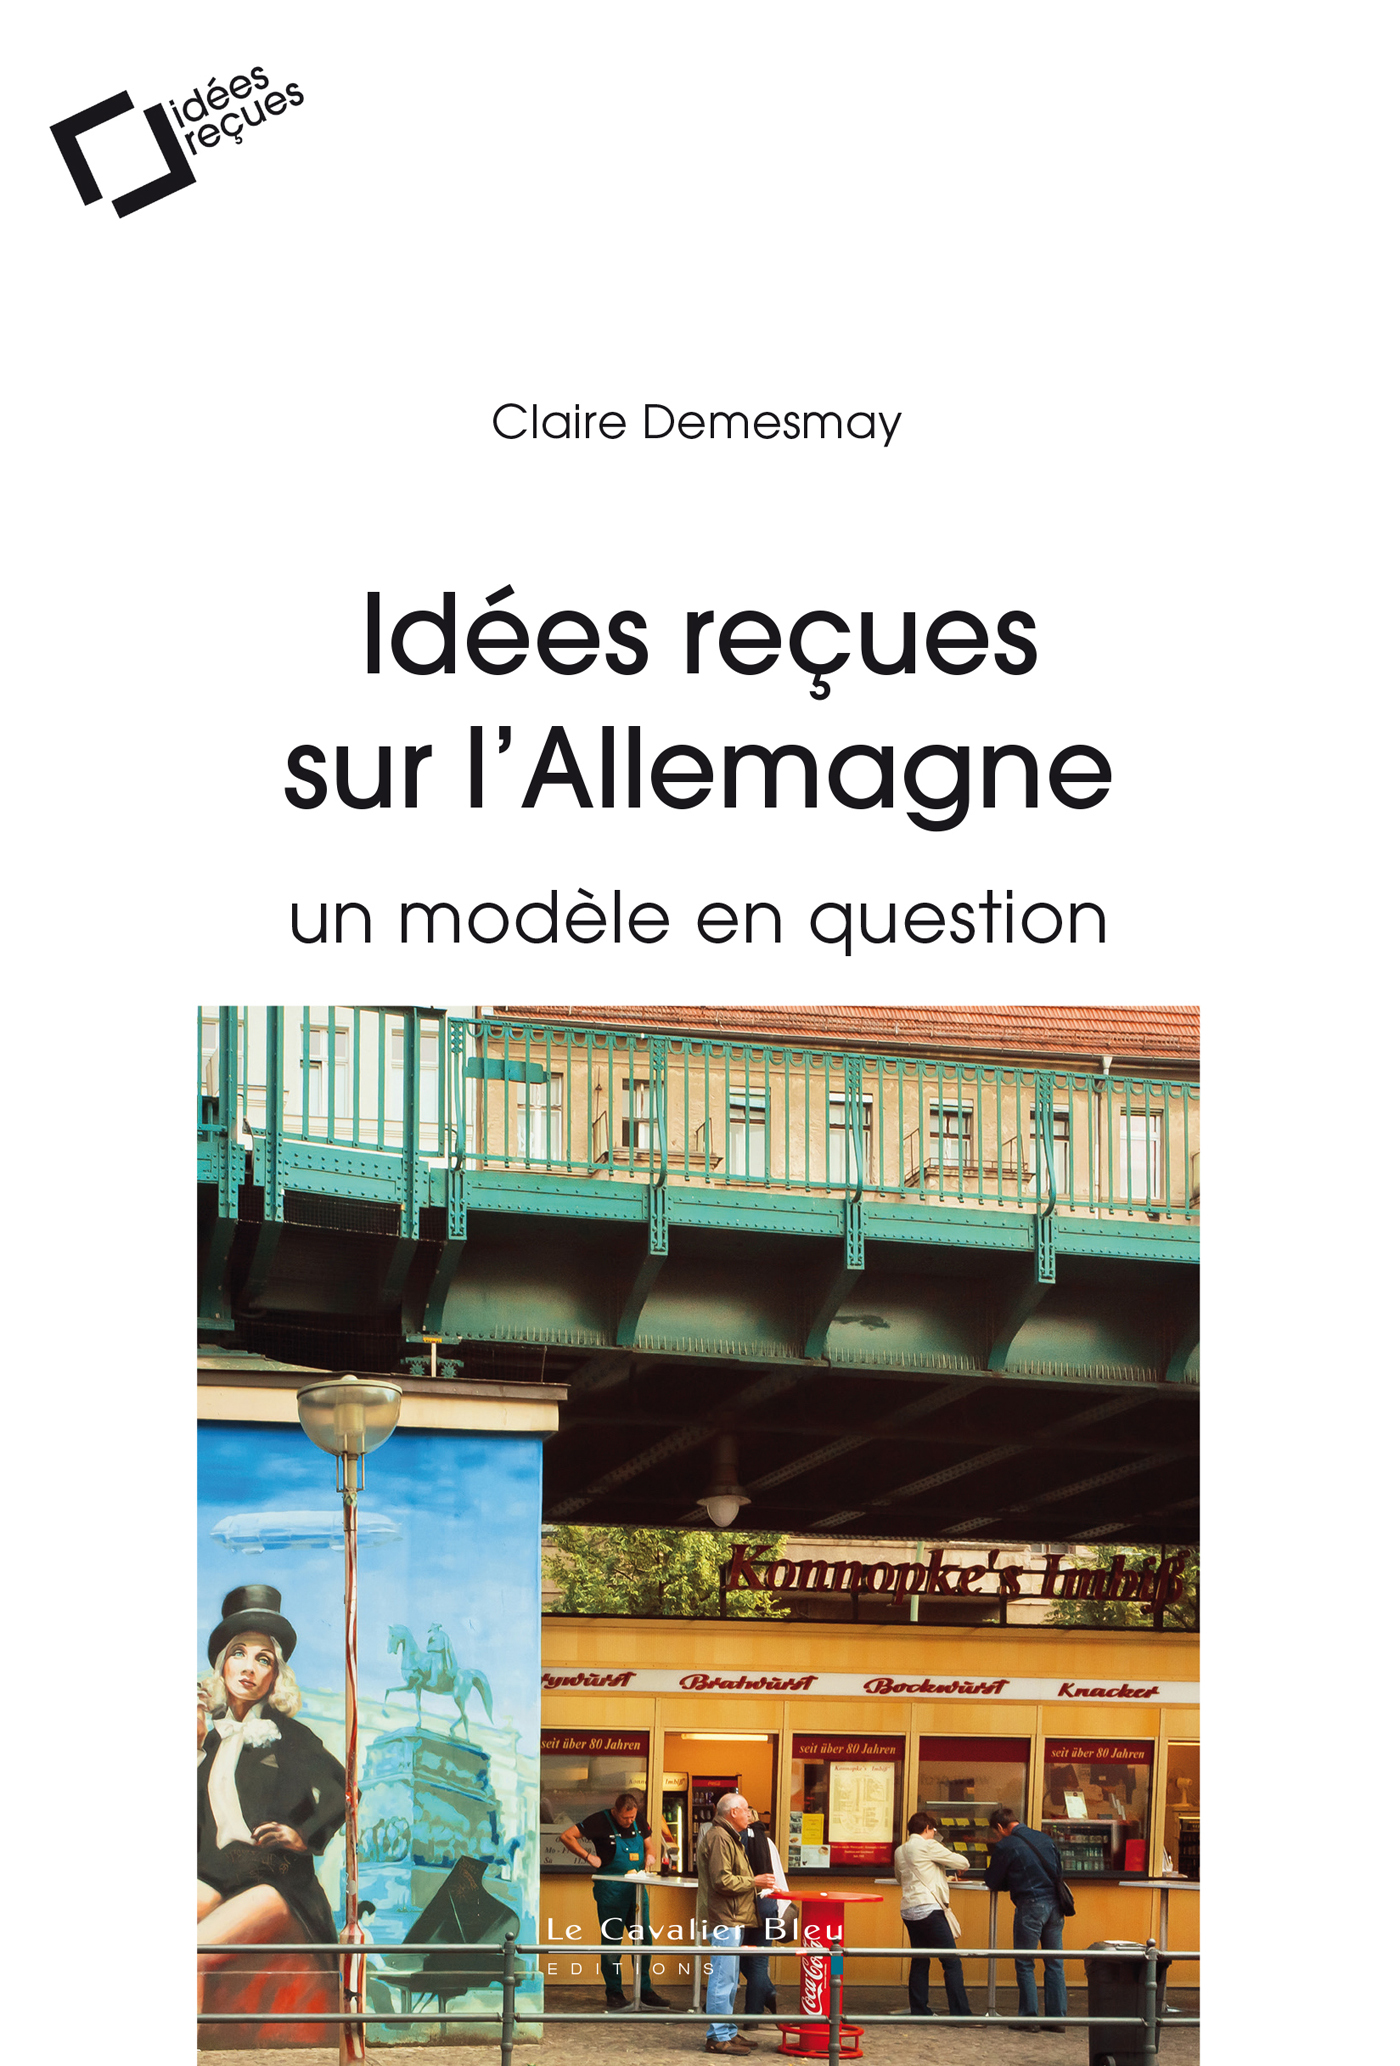 IDEES RECUES SUR L'ALLEMAGNE - UN MODELE EN QUESTION